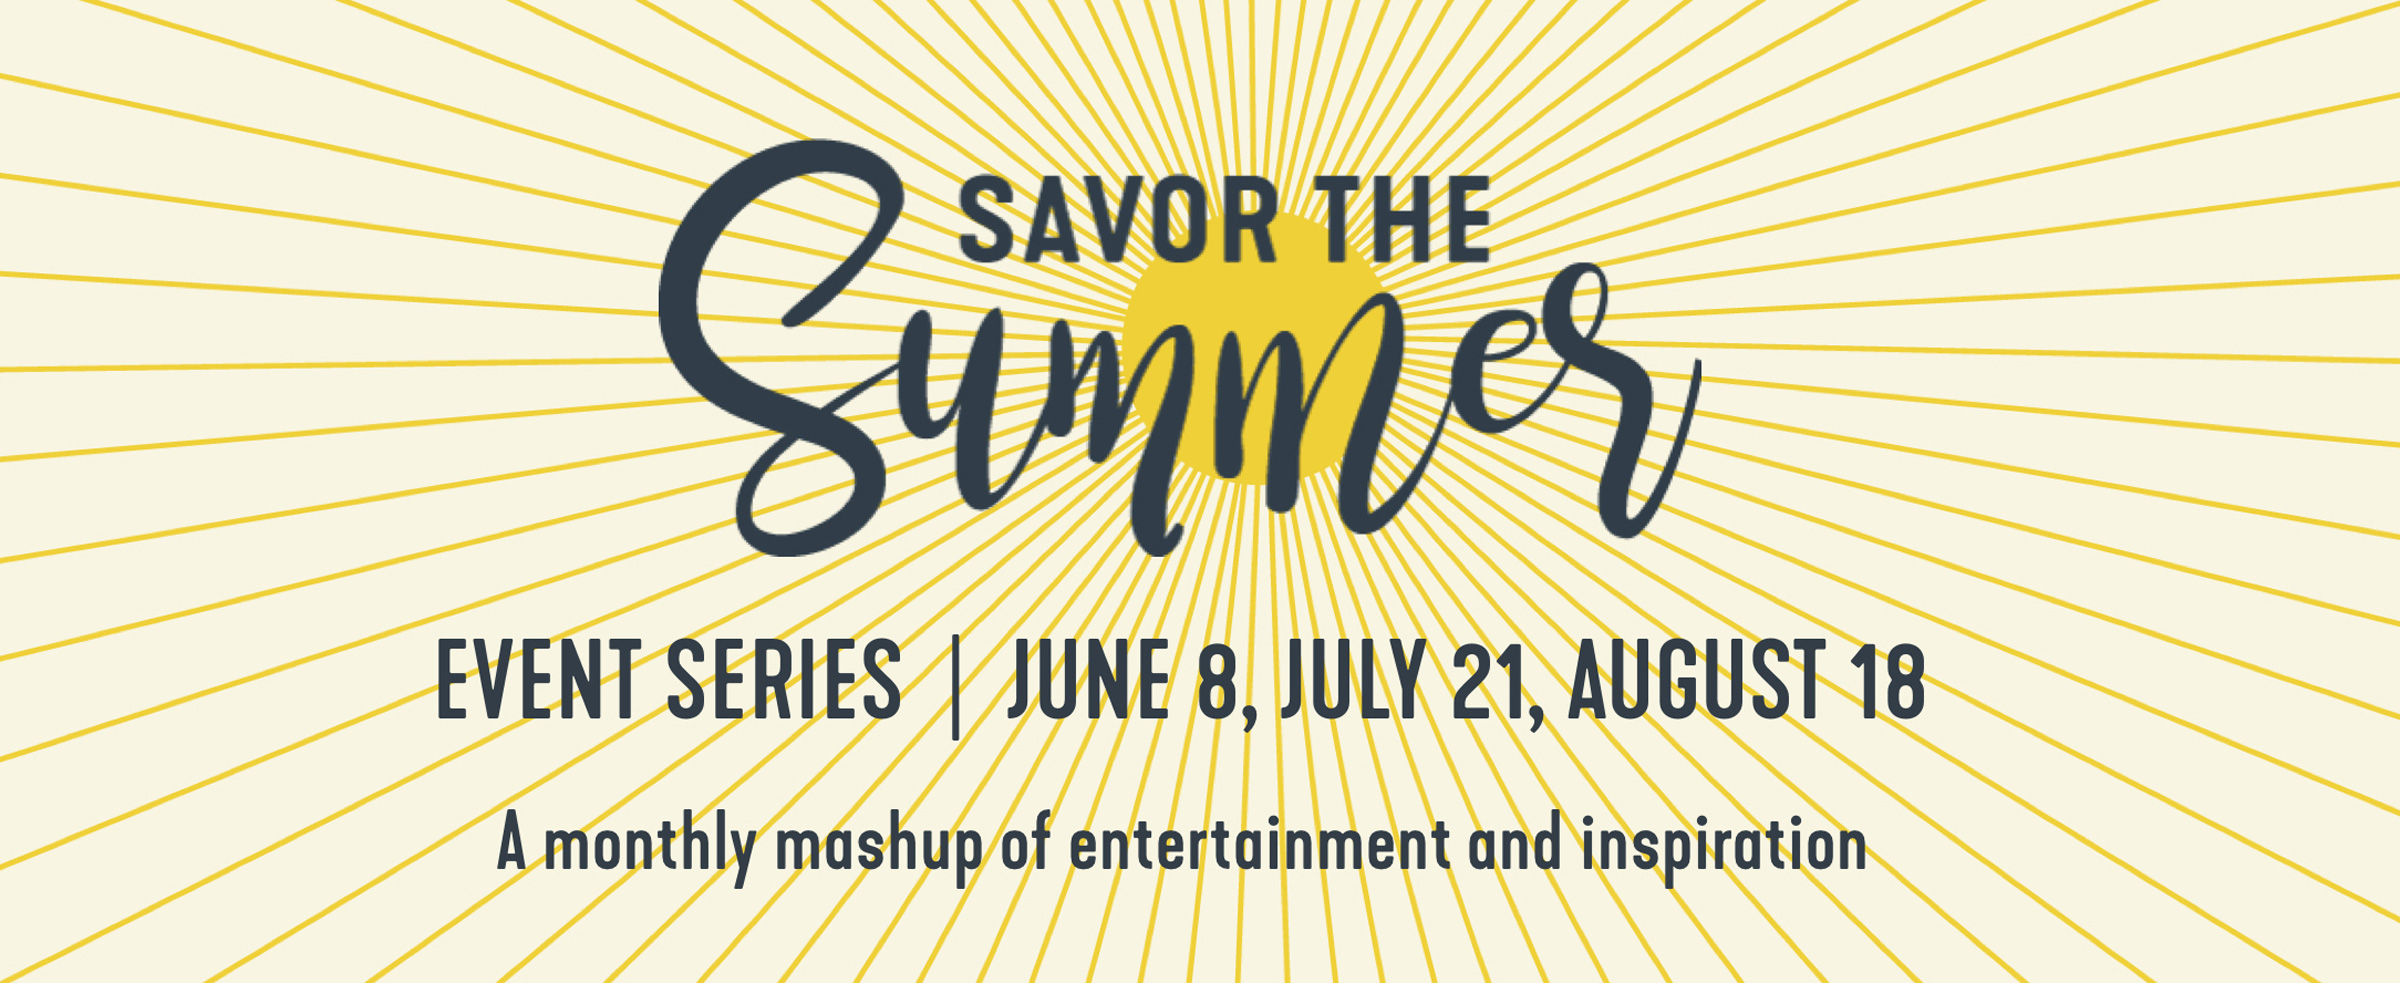 Savor The Summer Event Series